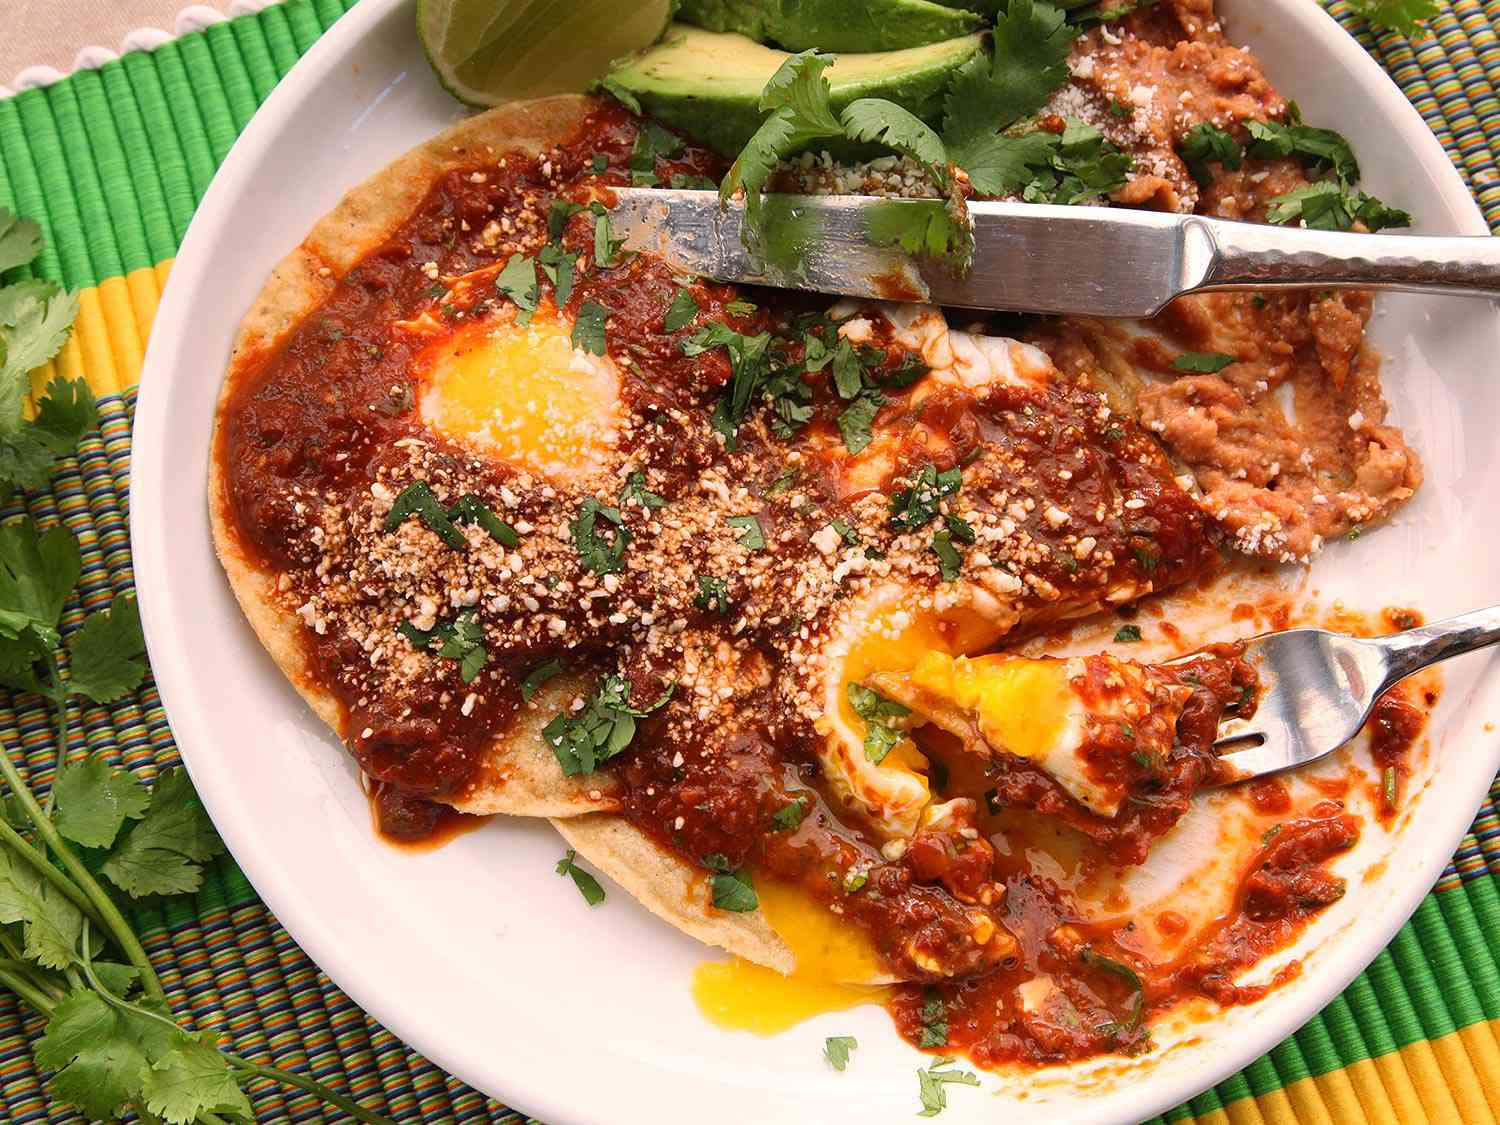 Quick and Easy Huevos Rancheros With Tomato-Chili Salsa on a plate with avocado slices, a lime wedge, and a fork and knife.